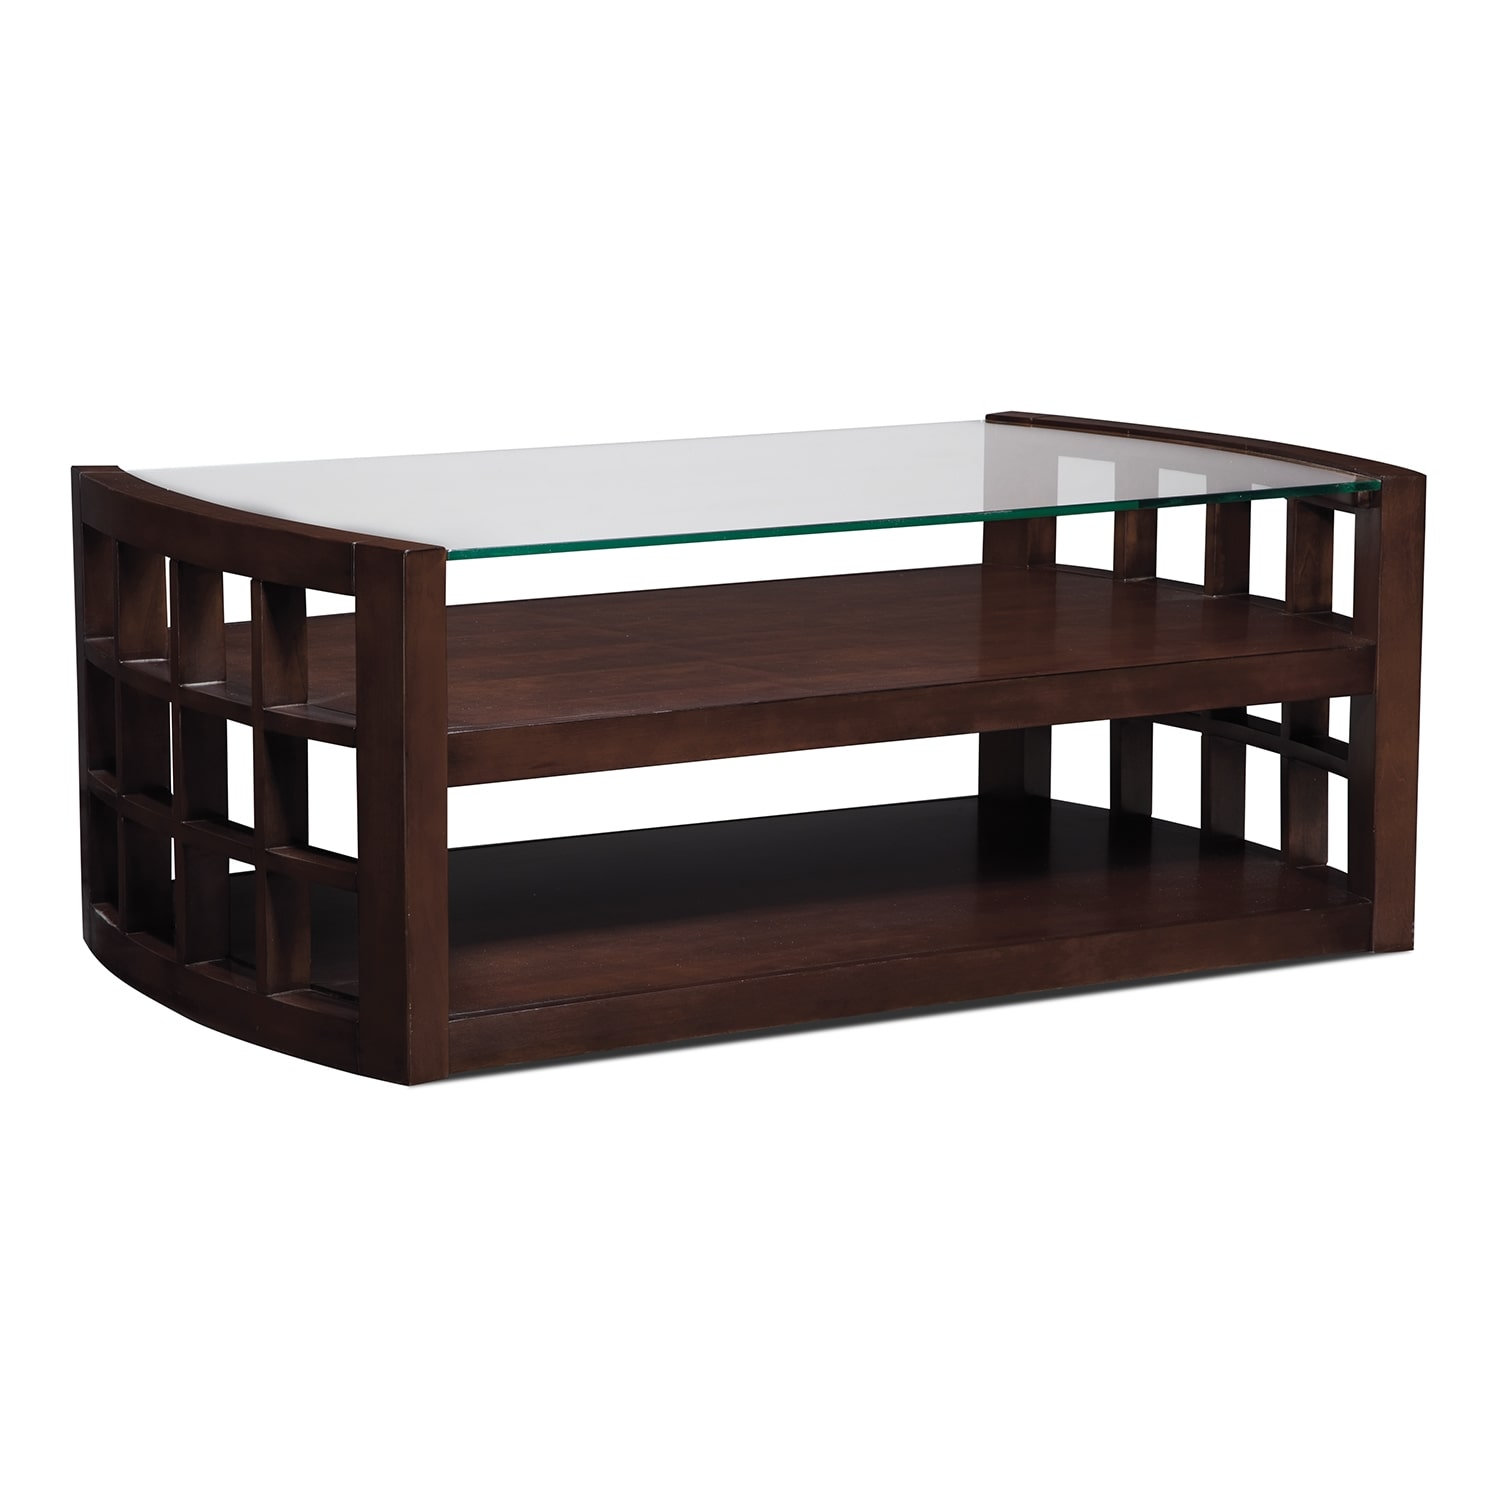 Accent and Occasional Furniture - Daytona Cocktail Table - Merlot